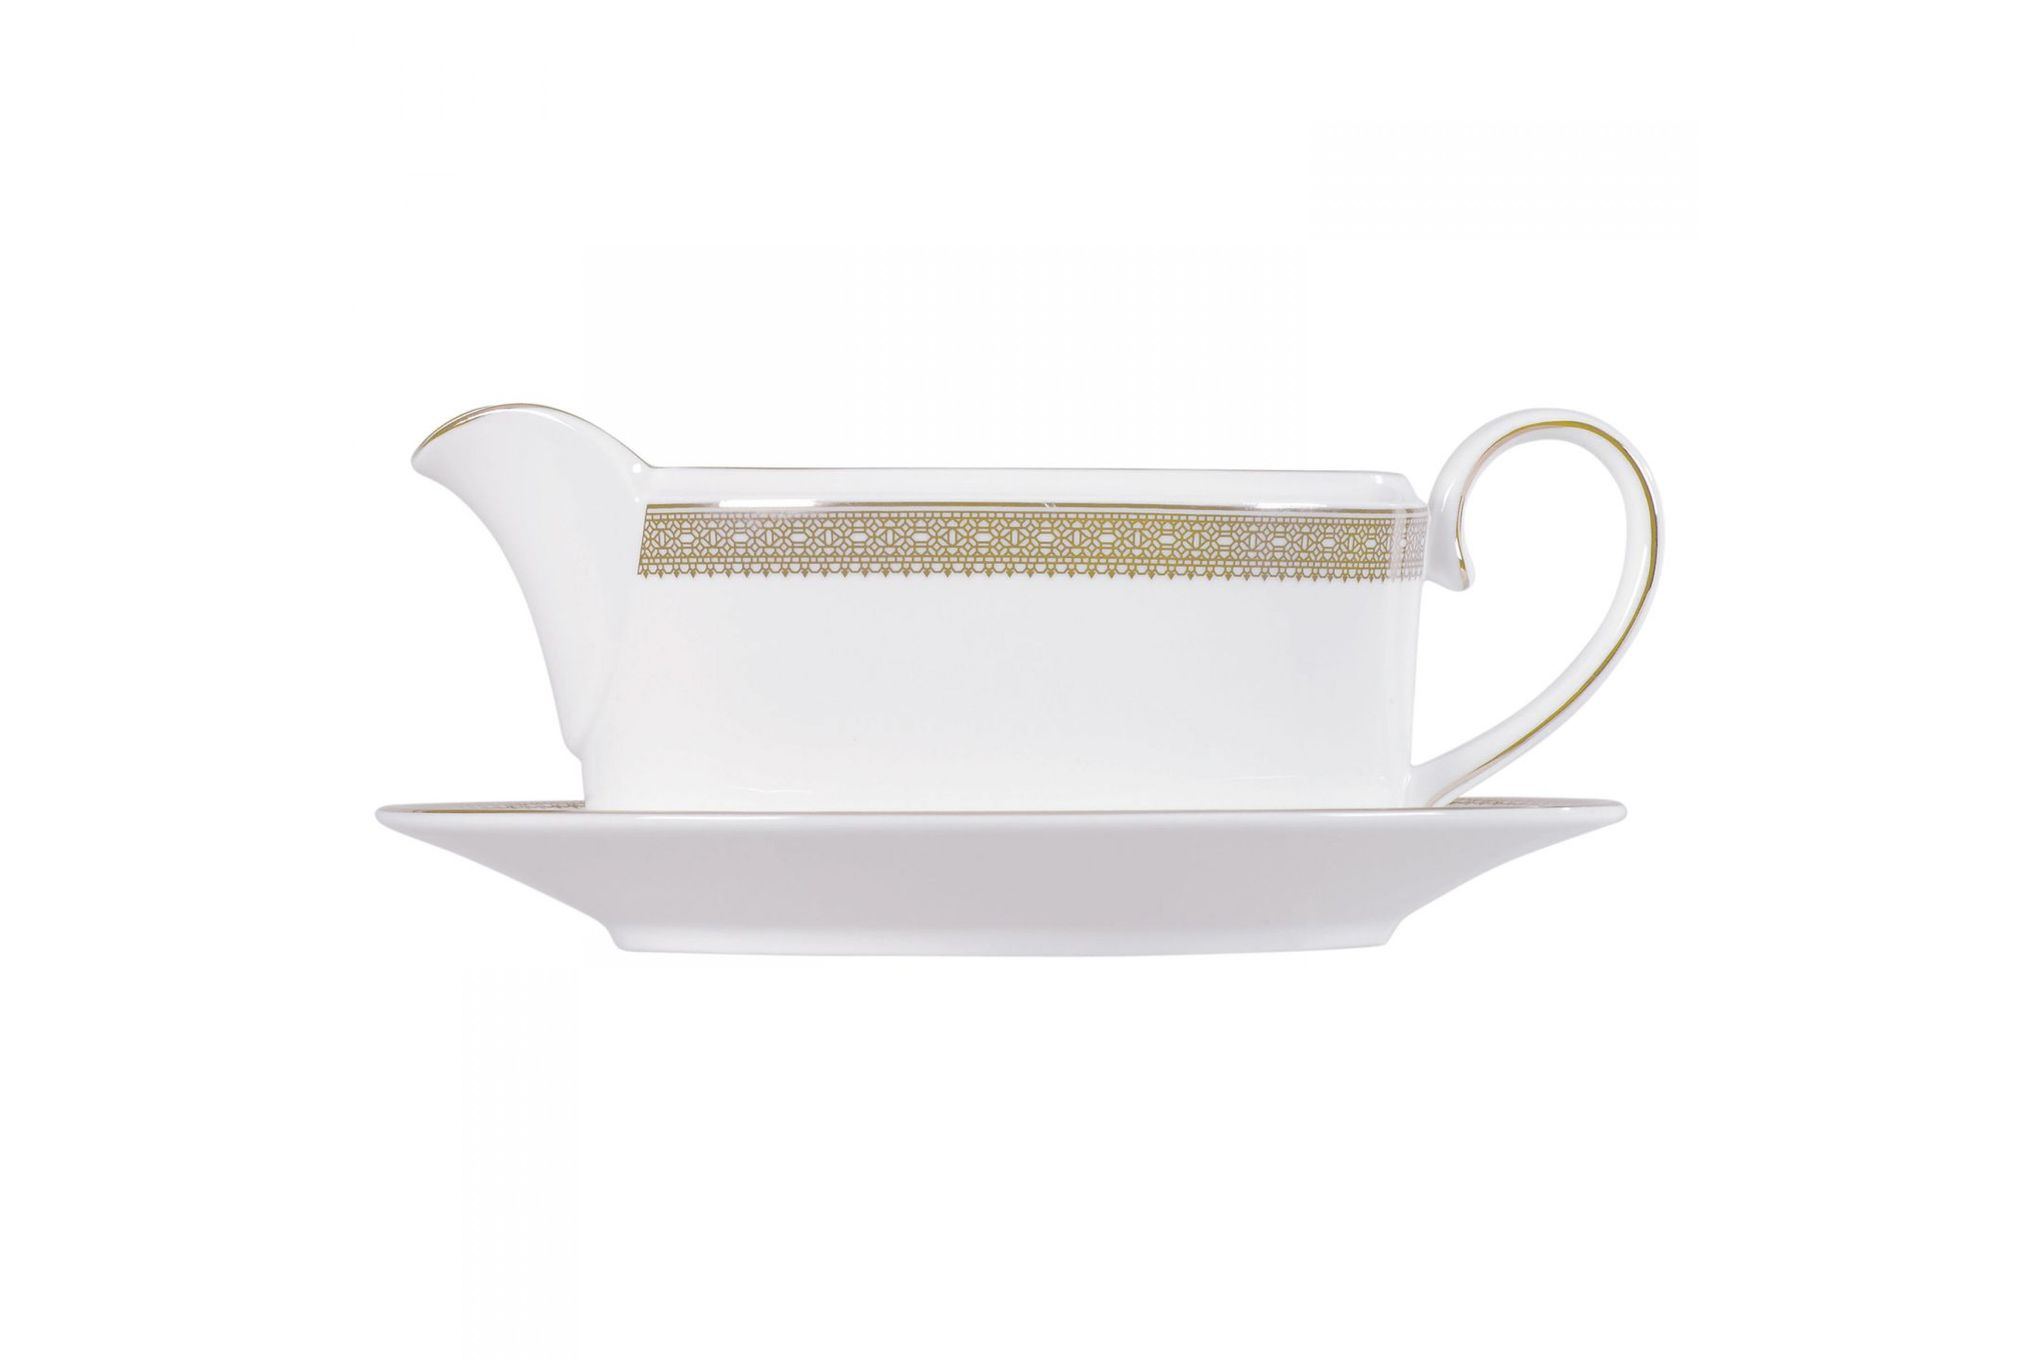 Vera Wang for Wedgwood Lace Gold Sauce Boat Stand thumb 1